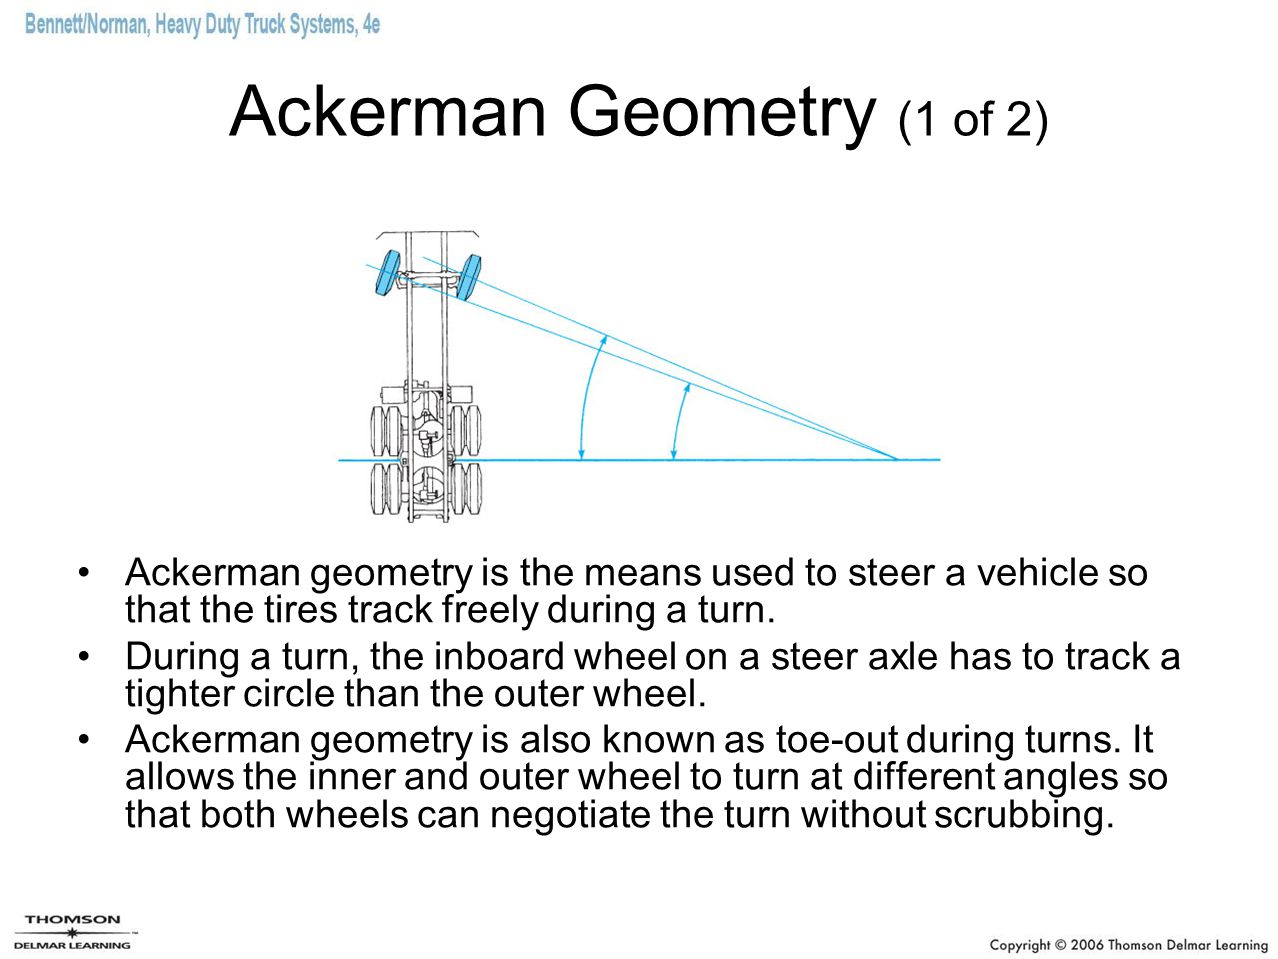 Ackerman Geometry (1 of 2)